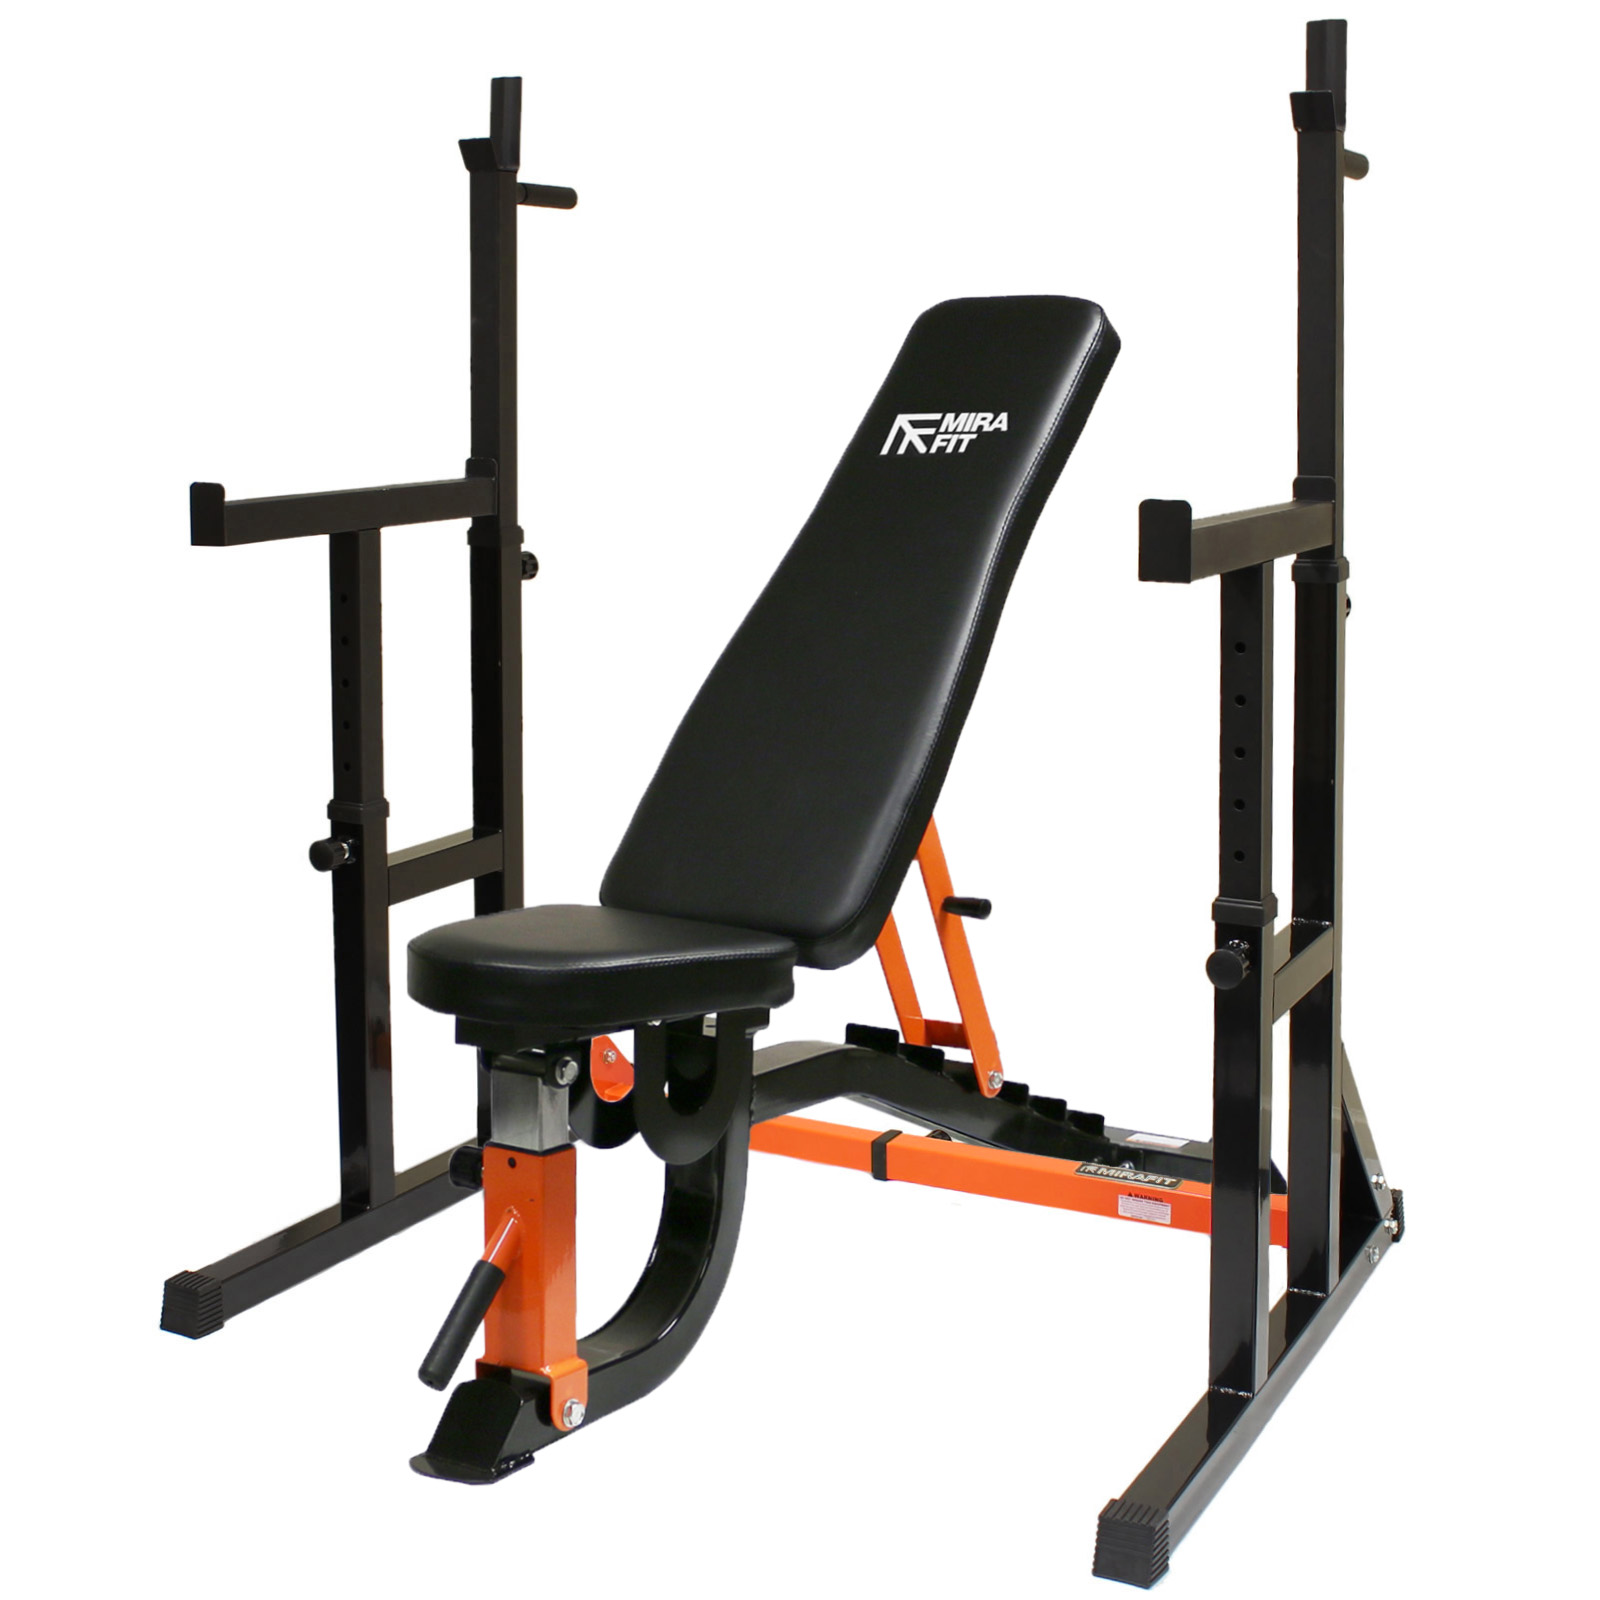 Sports Authority Bench Press | Used Weight Bench | Powerhouse Weight Bench